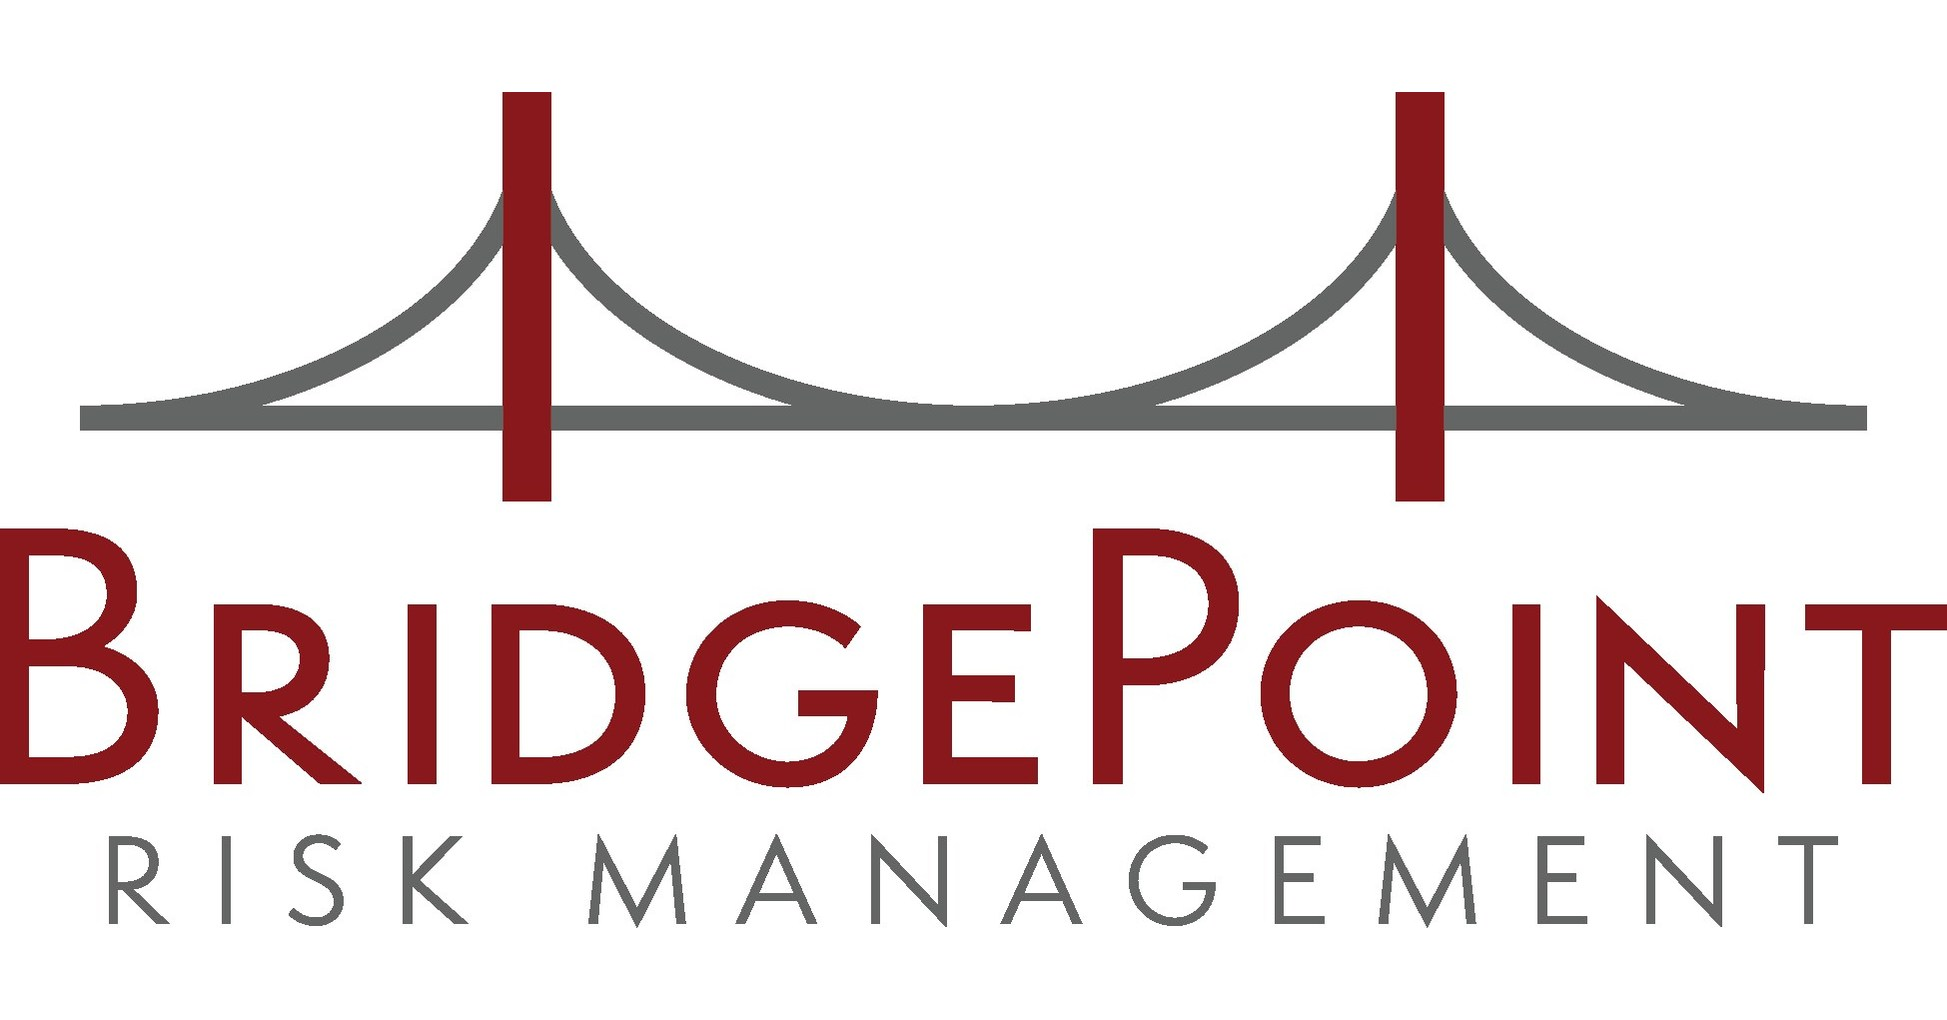 BridgePoint Risk Management Continues Its Rapid Expansion With Experienced Additions to Their Team